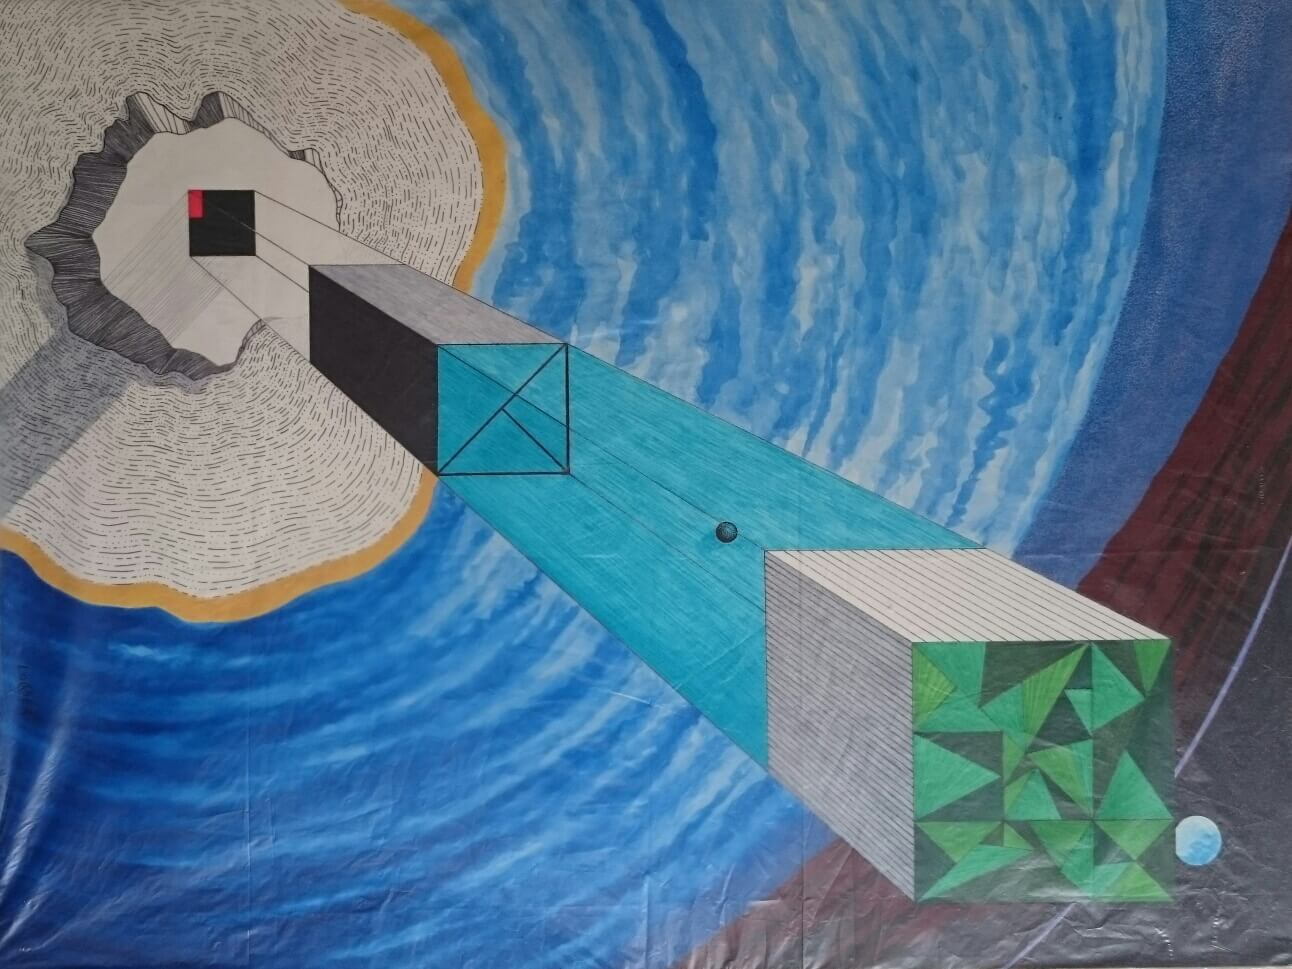 Reaching out with art from death row in San Quentin, California – By Nicola White